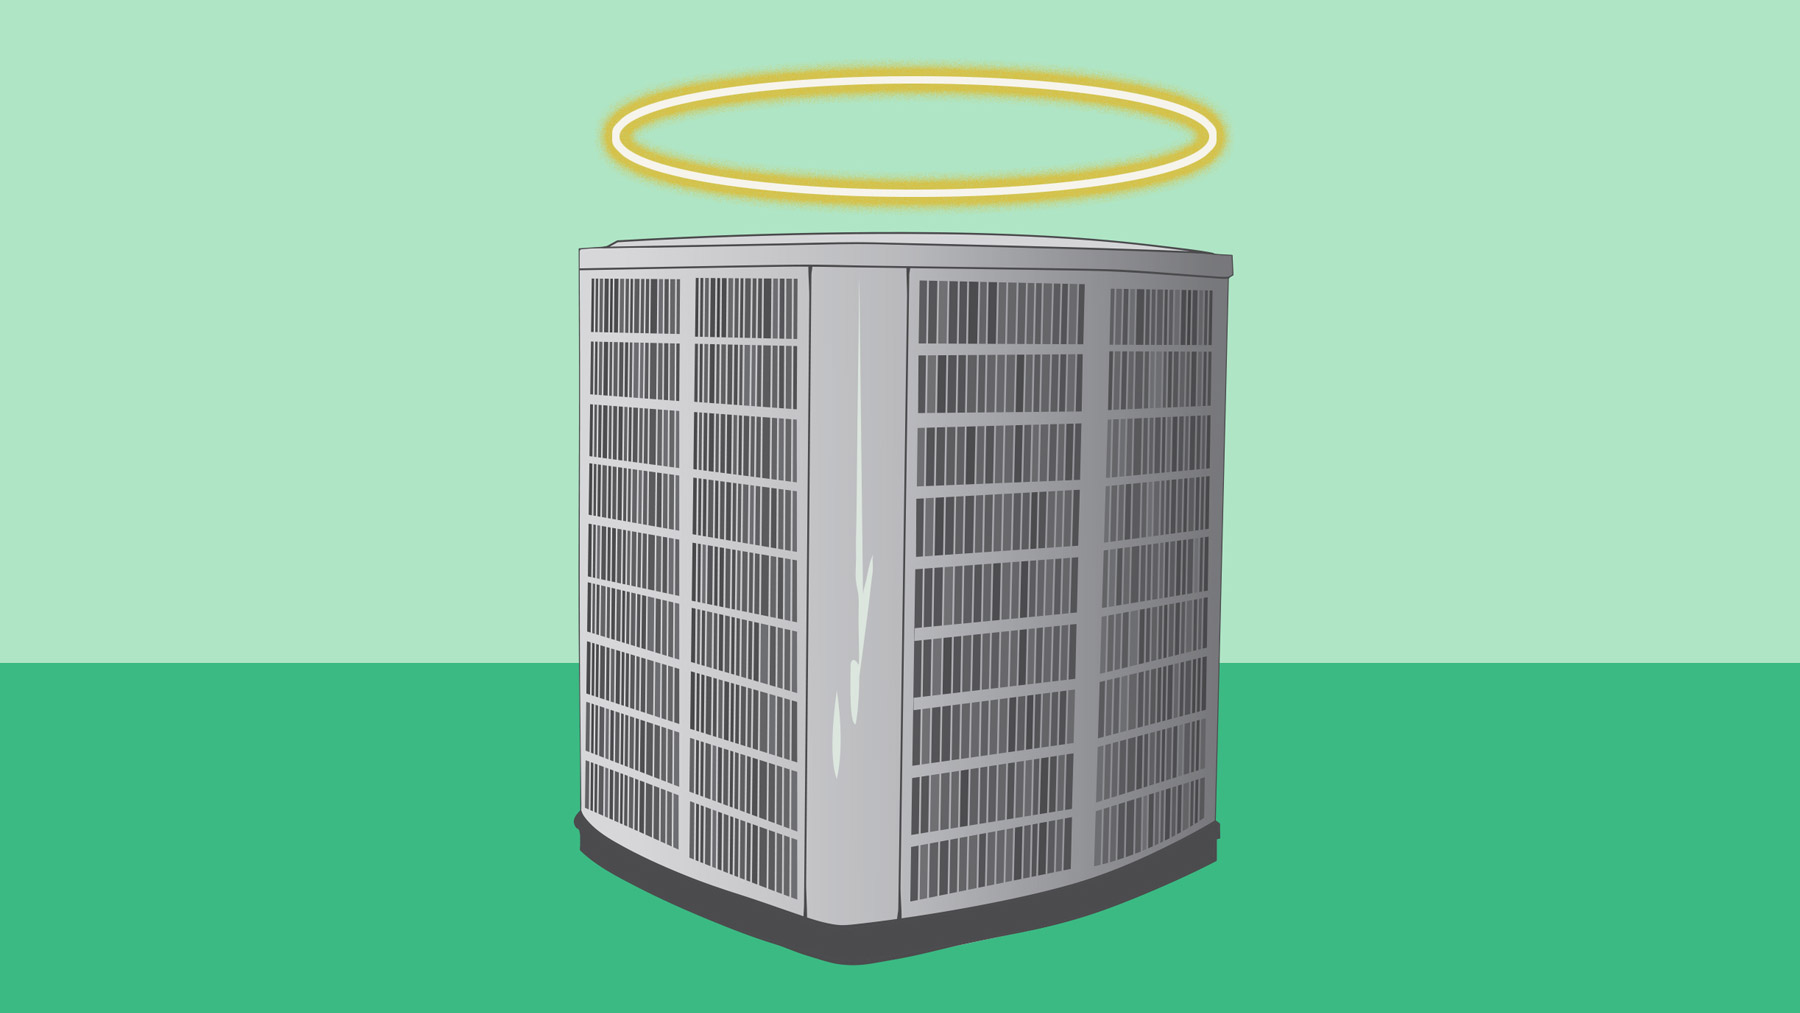 Air conditioning over family - what people prefer in a new home